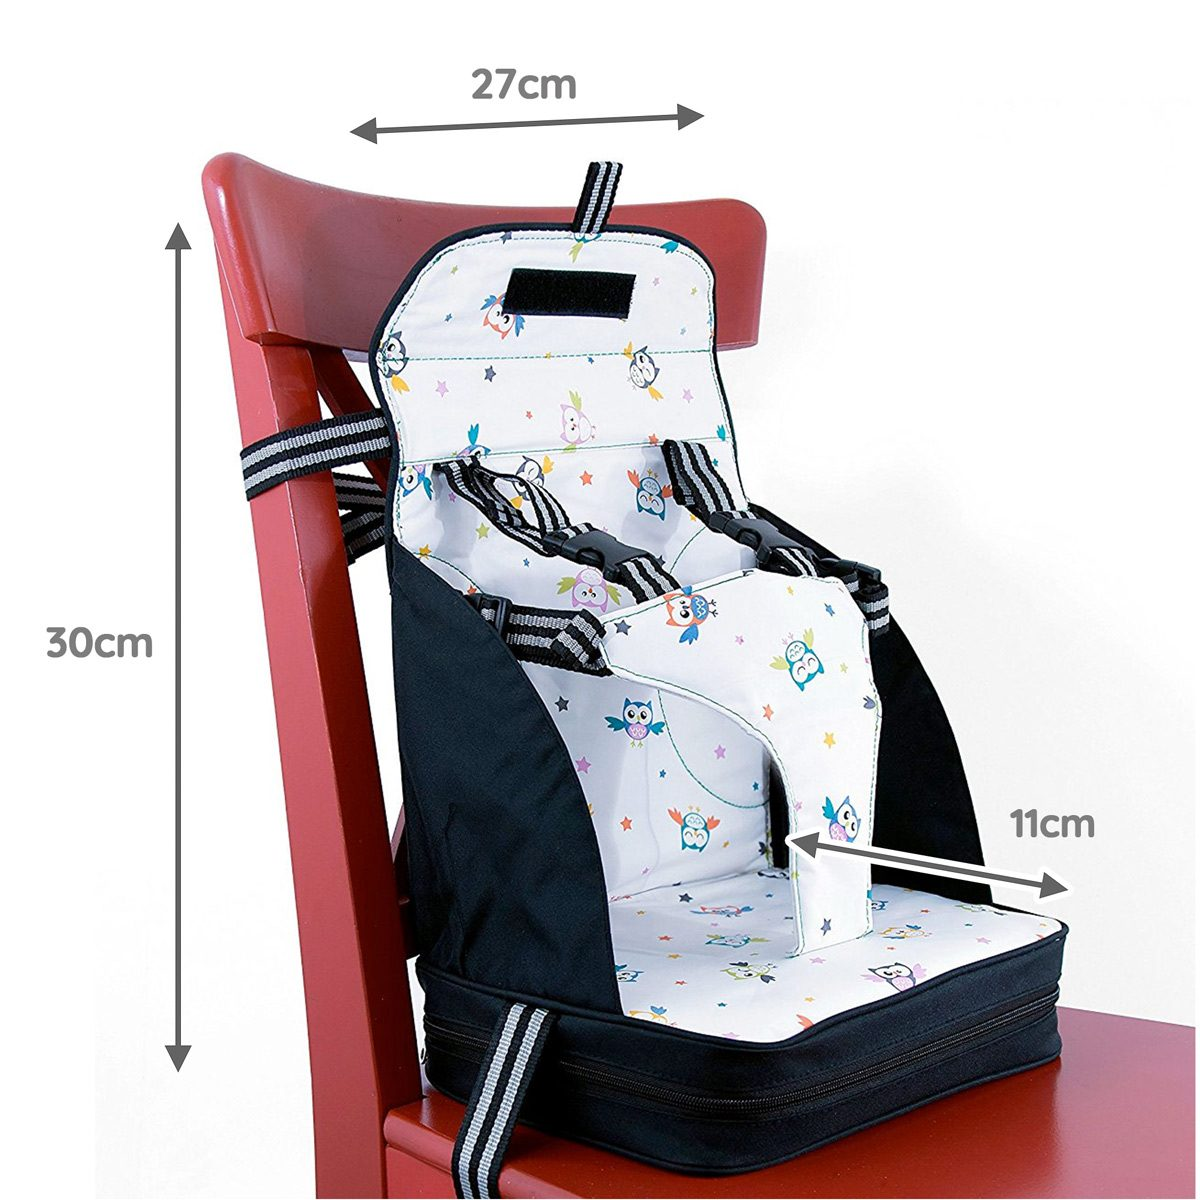 Venture Table Booster Seat Dimensions